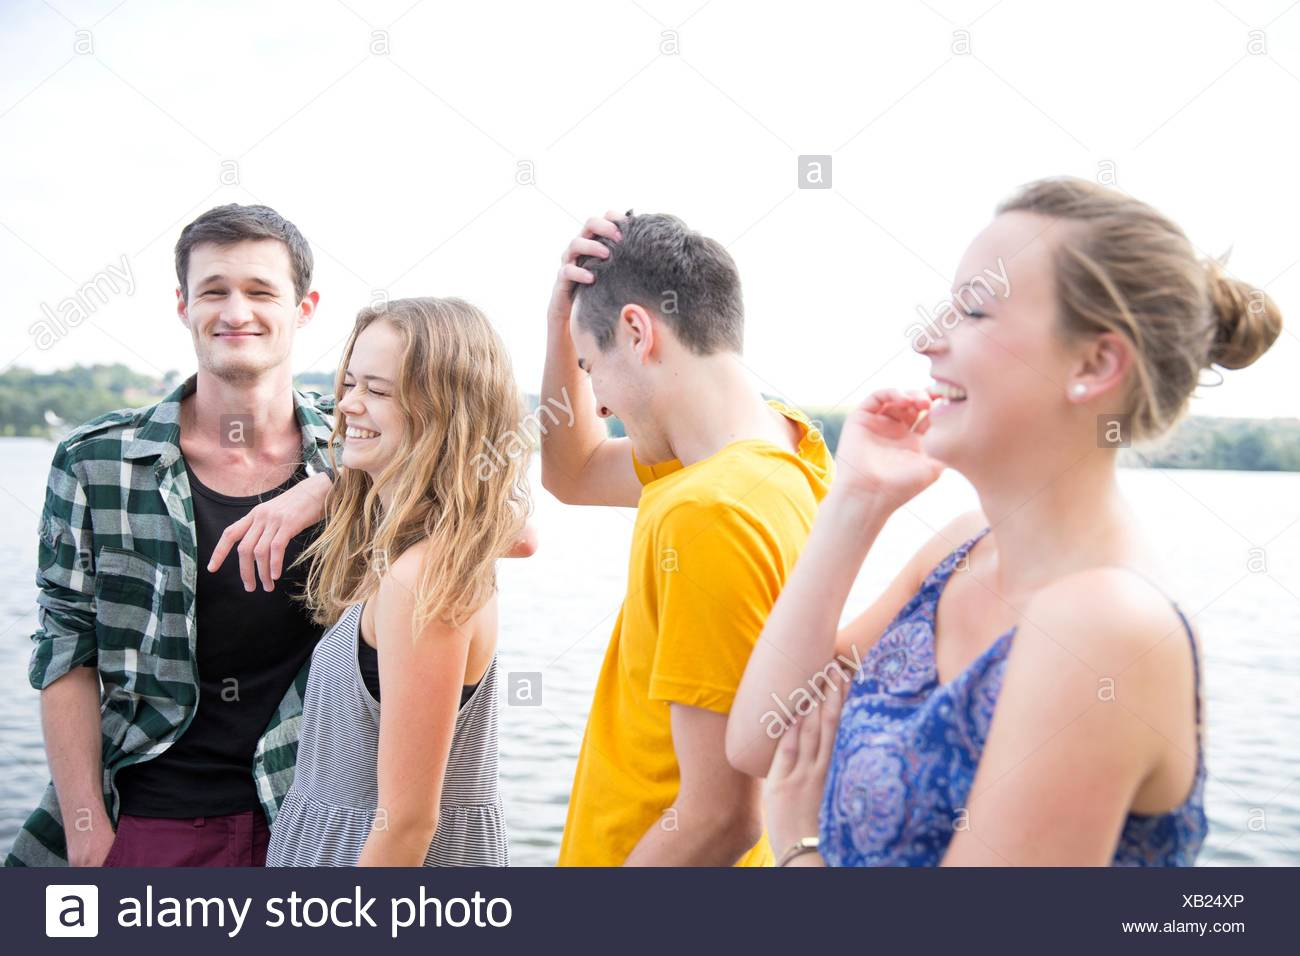 Group of young adults, outdoors, laughing Stock Photo